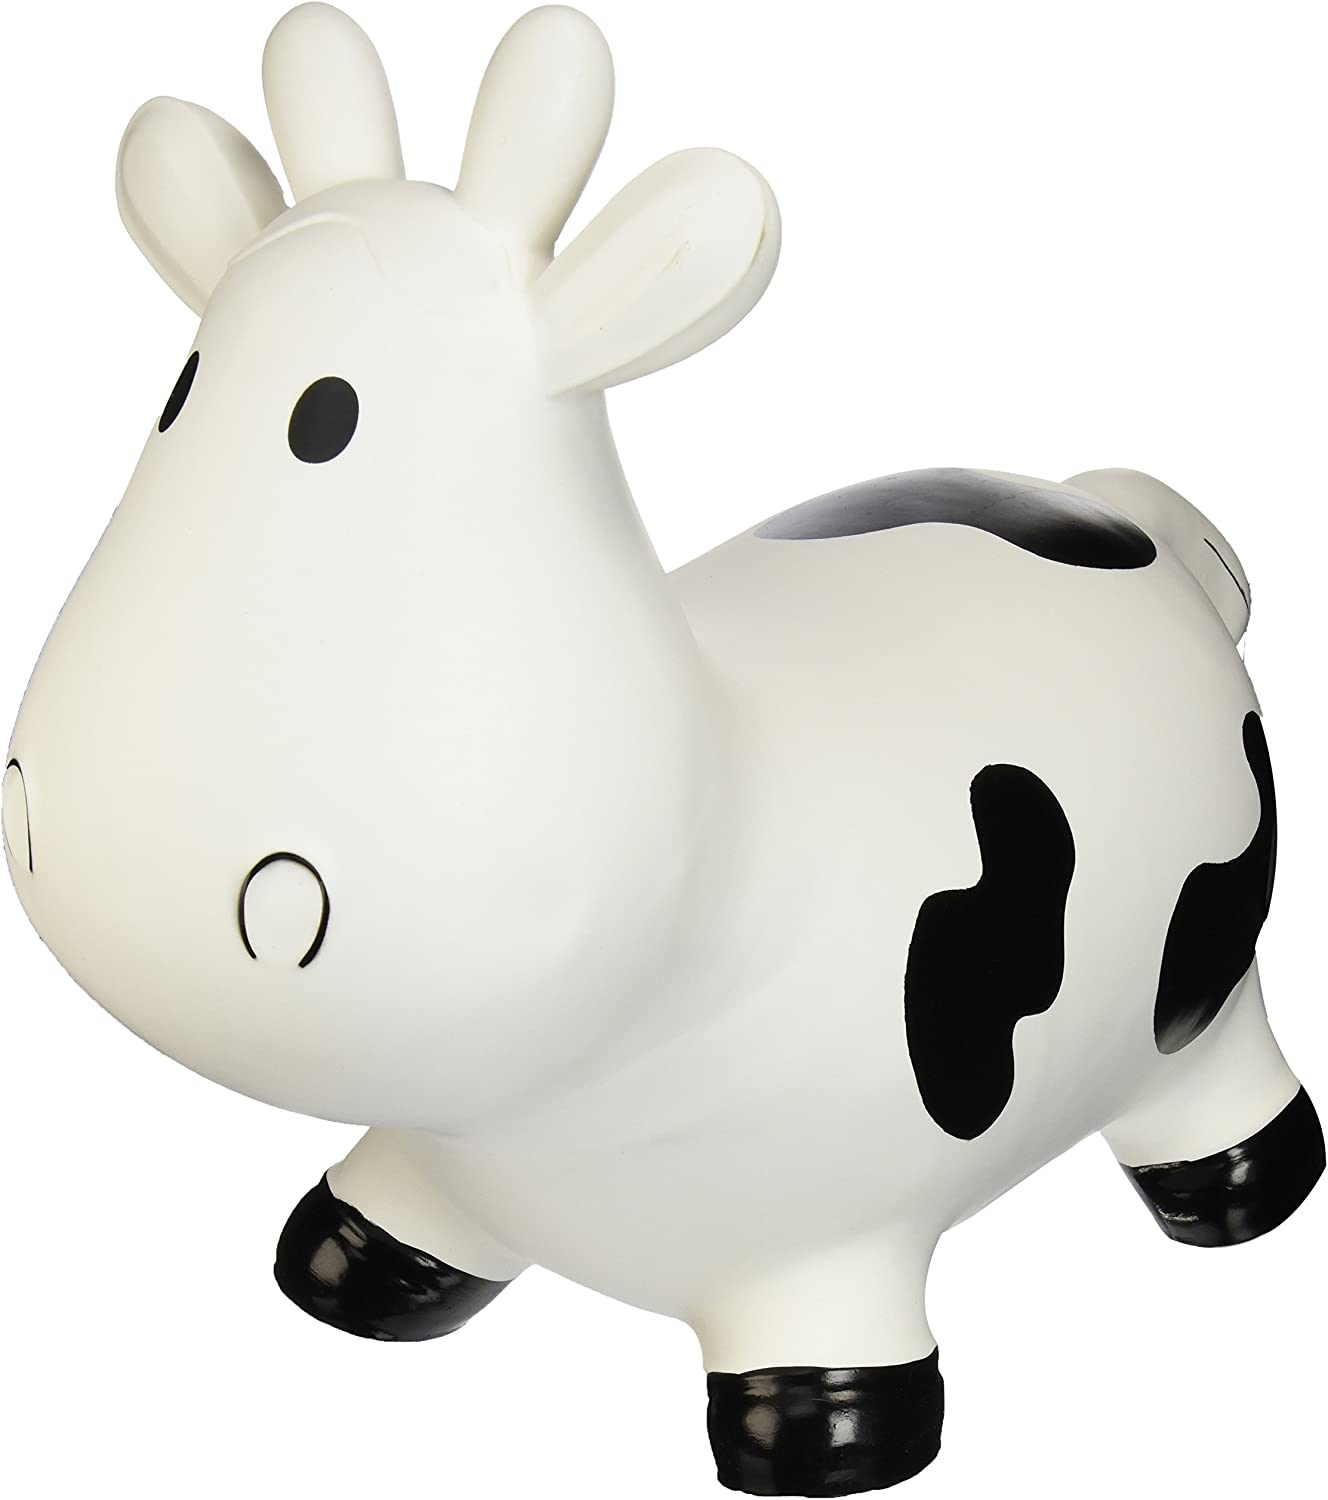 Trumpette Howdy Cow Kids Inflatable Bouncy Rubber Hopper RideOn Toy White